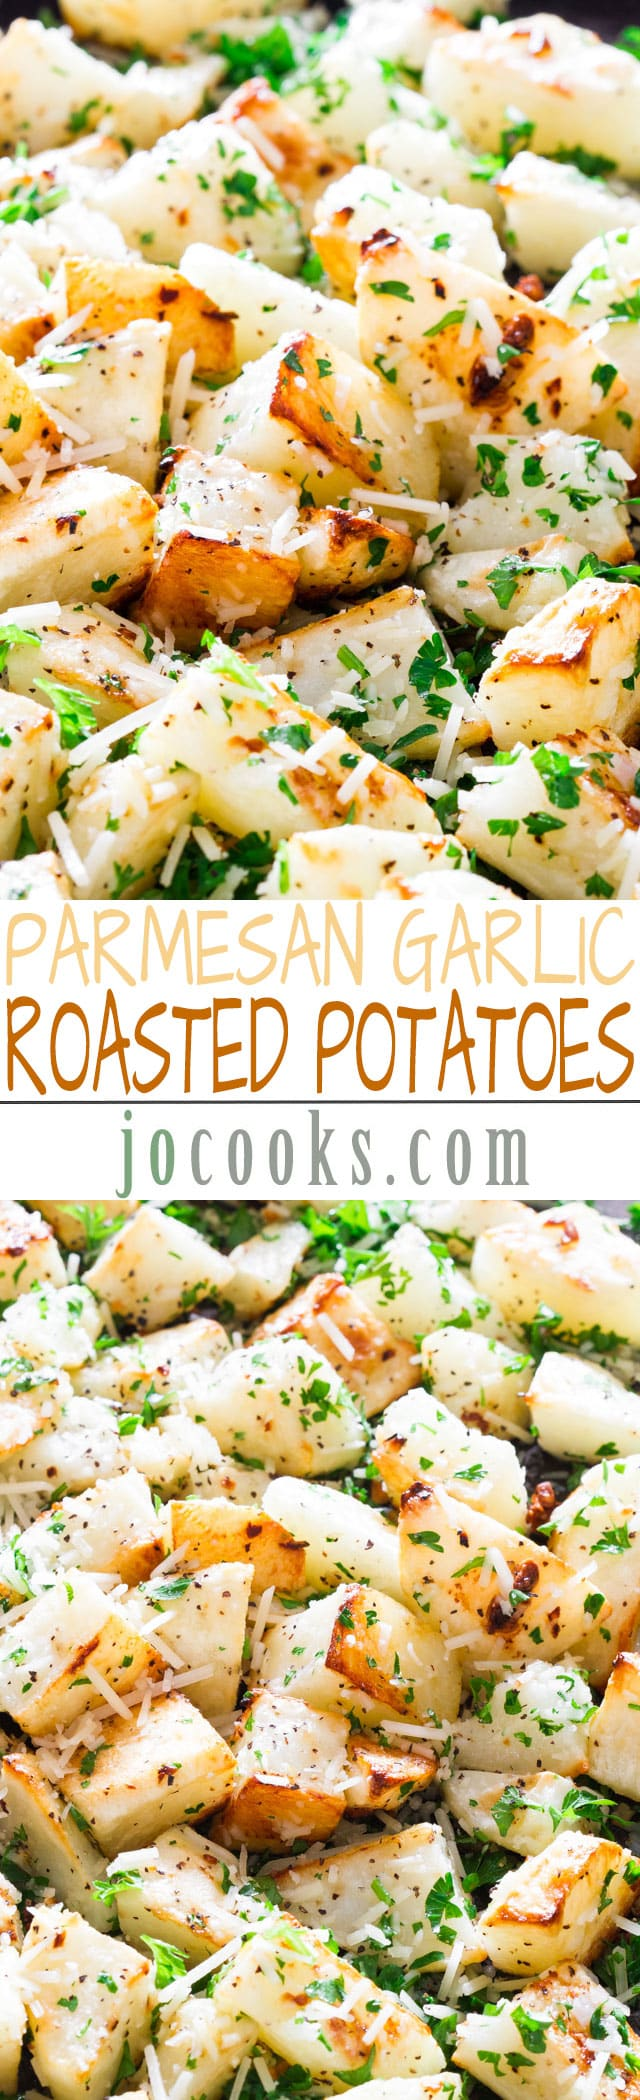 parmesan-garlic-roasted-potatoes